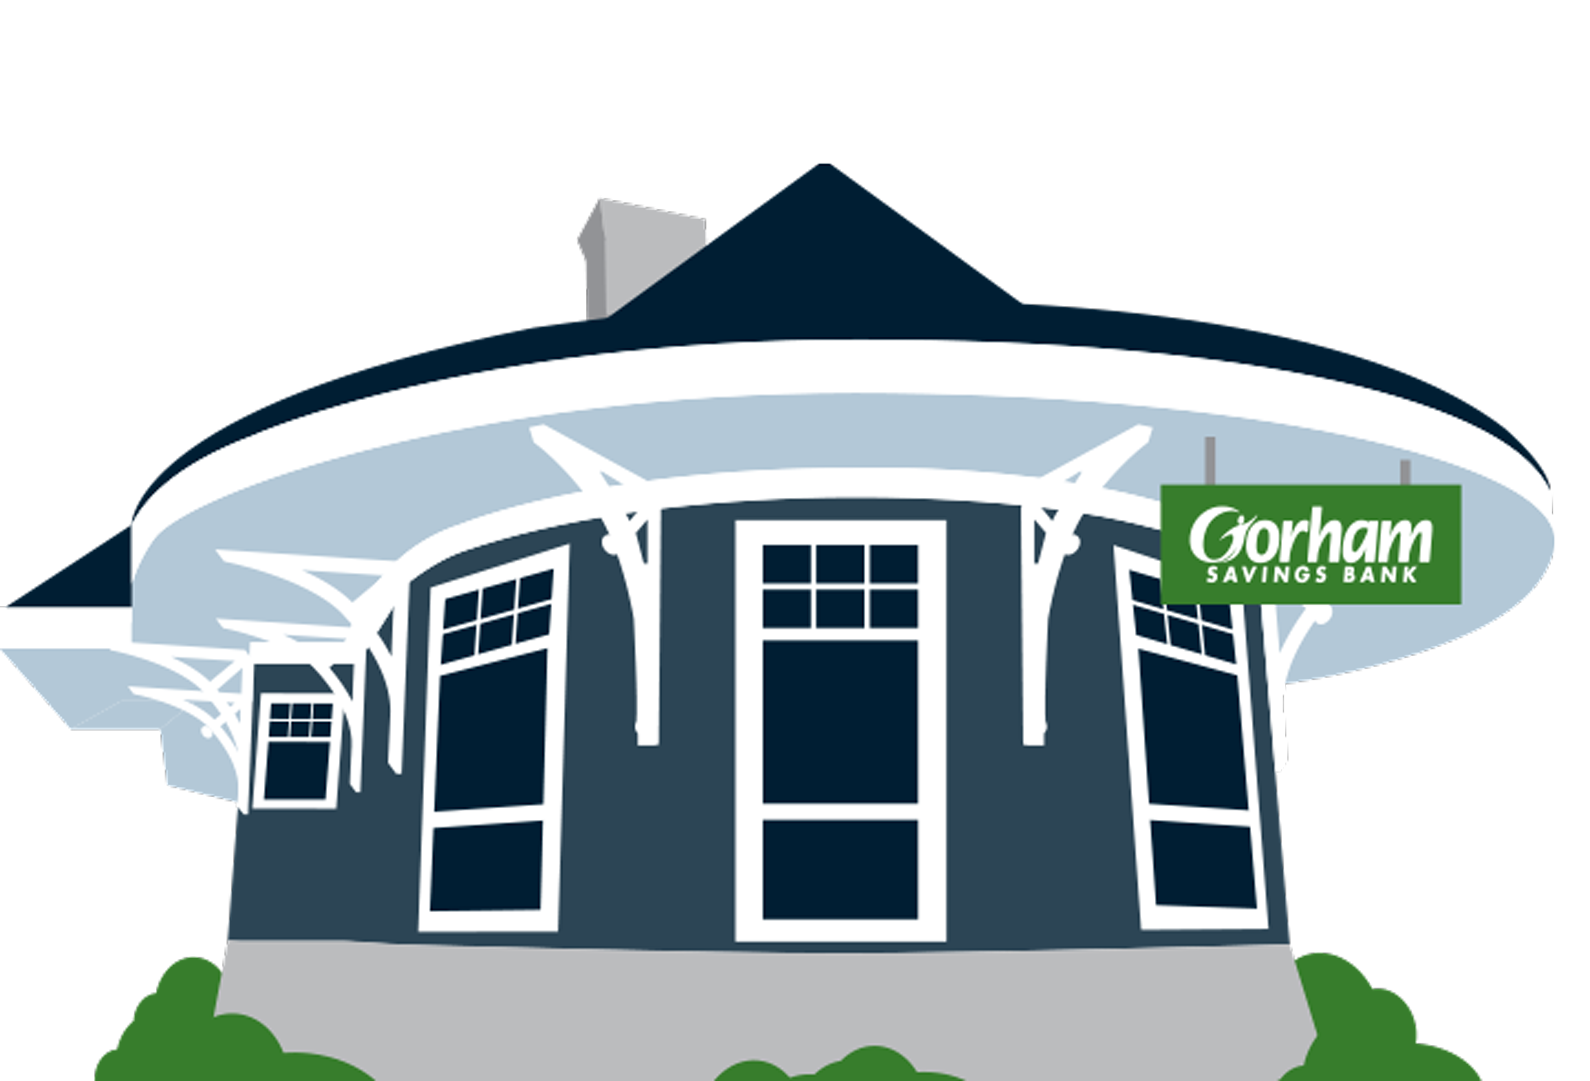 Graphic representation of Yarmouth train station, home of future GSB branch in Yarmouth, Maine